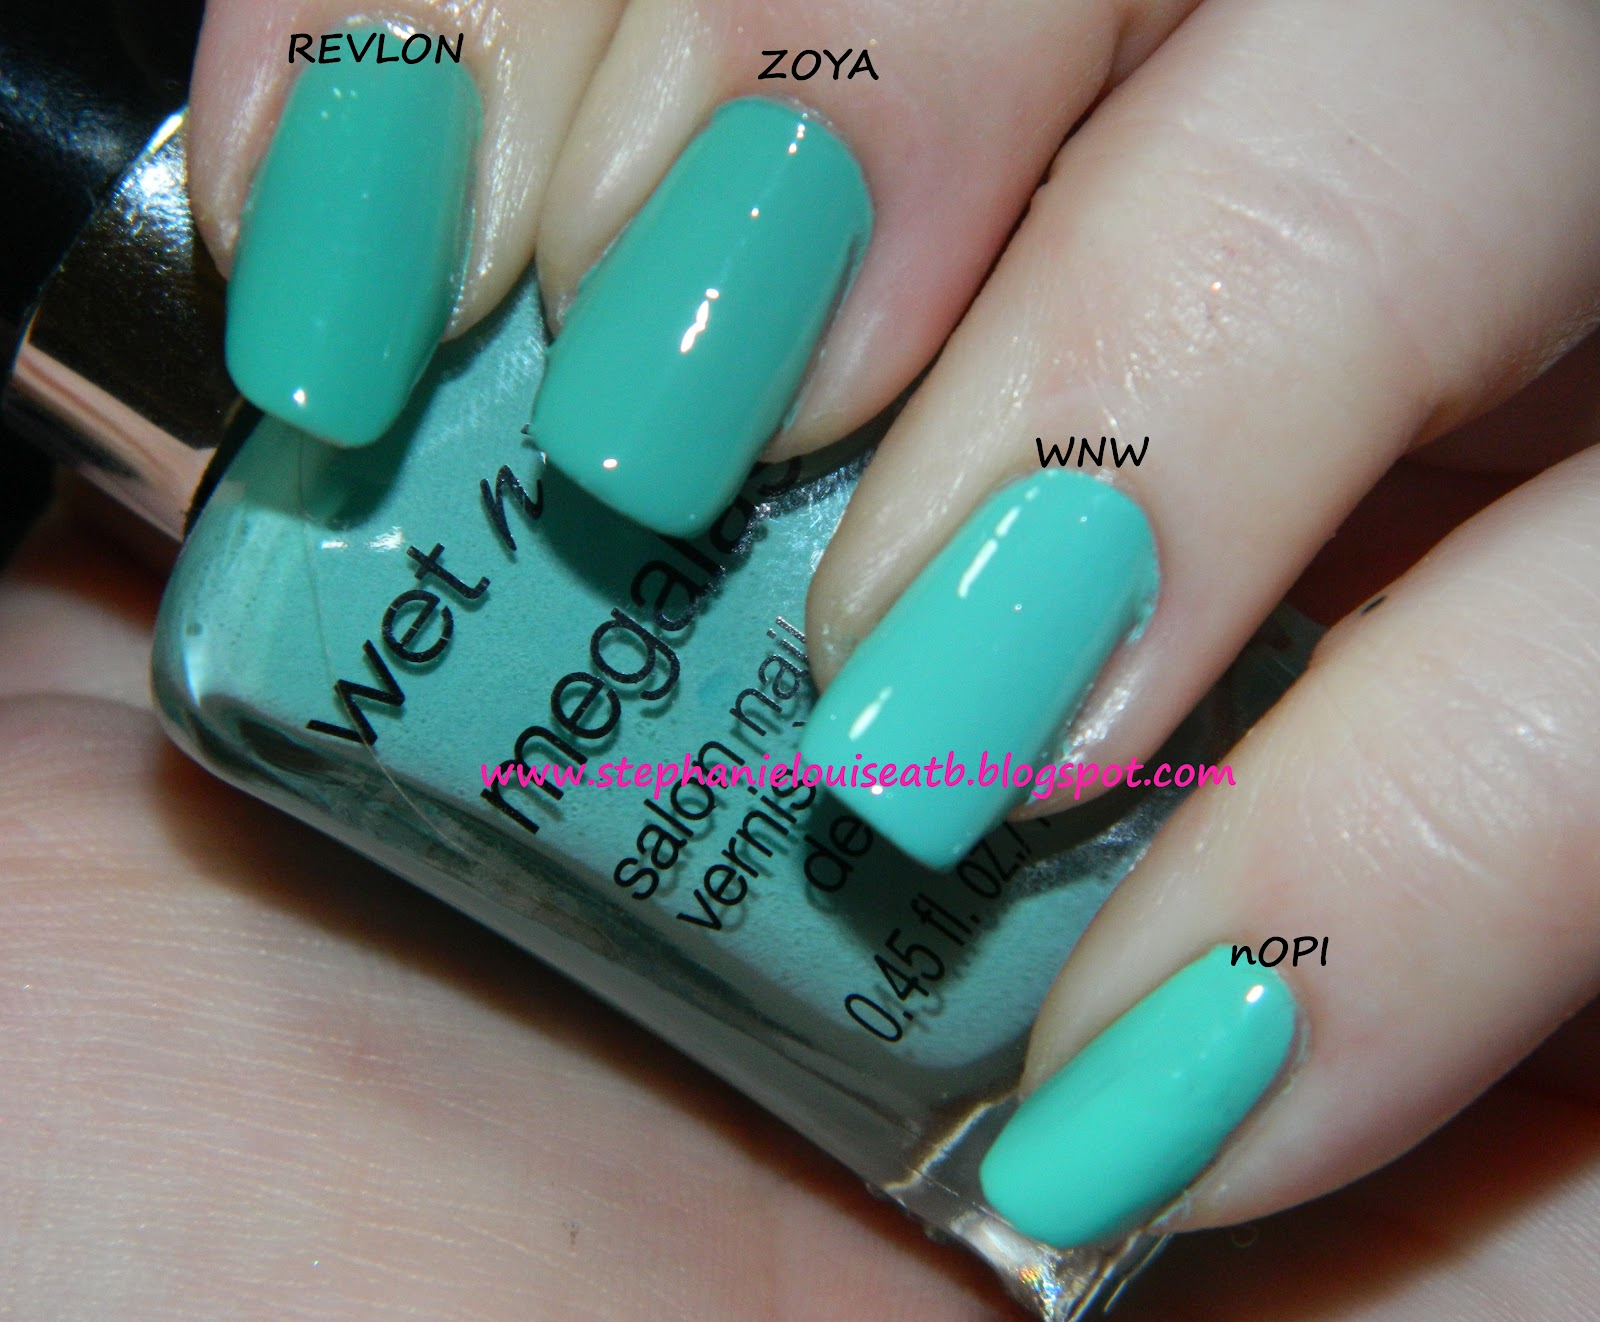 My Current Favorite Mint Nail Polishes for Spring